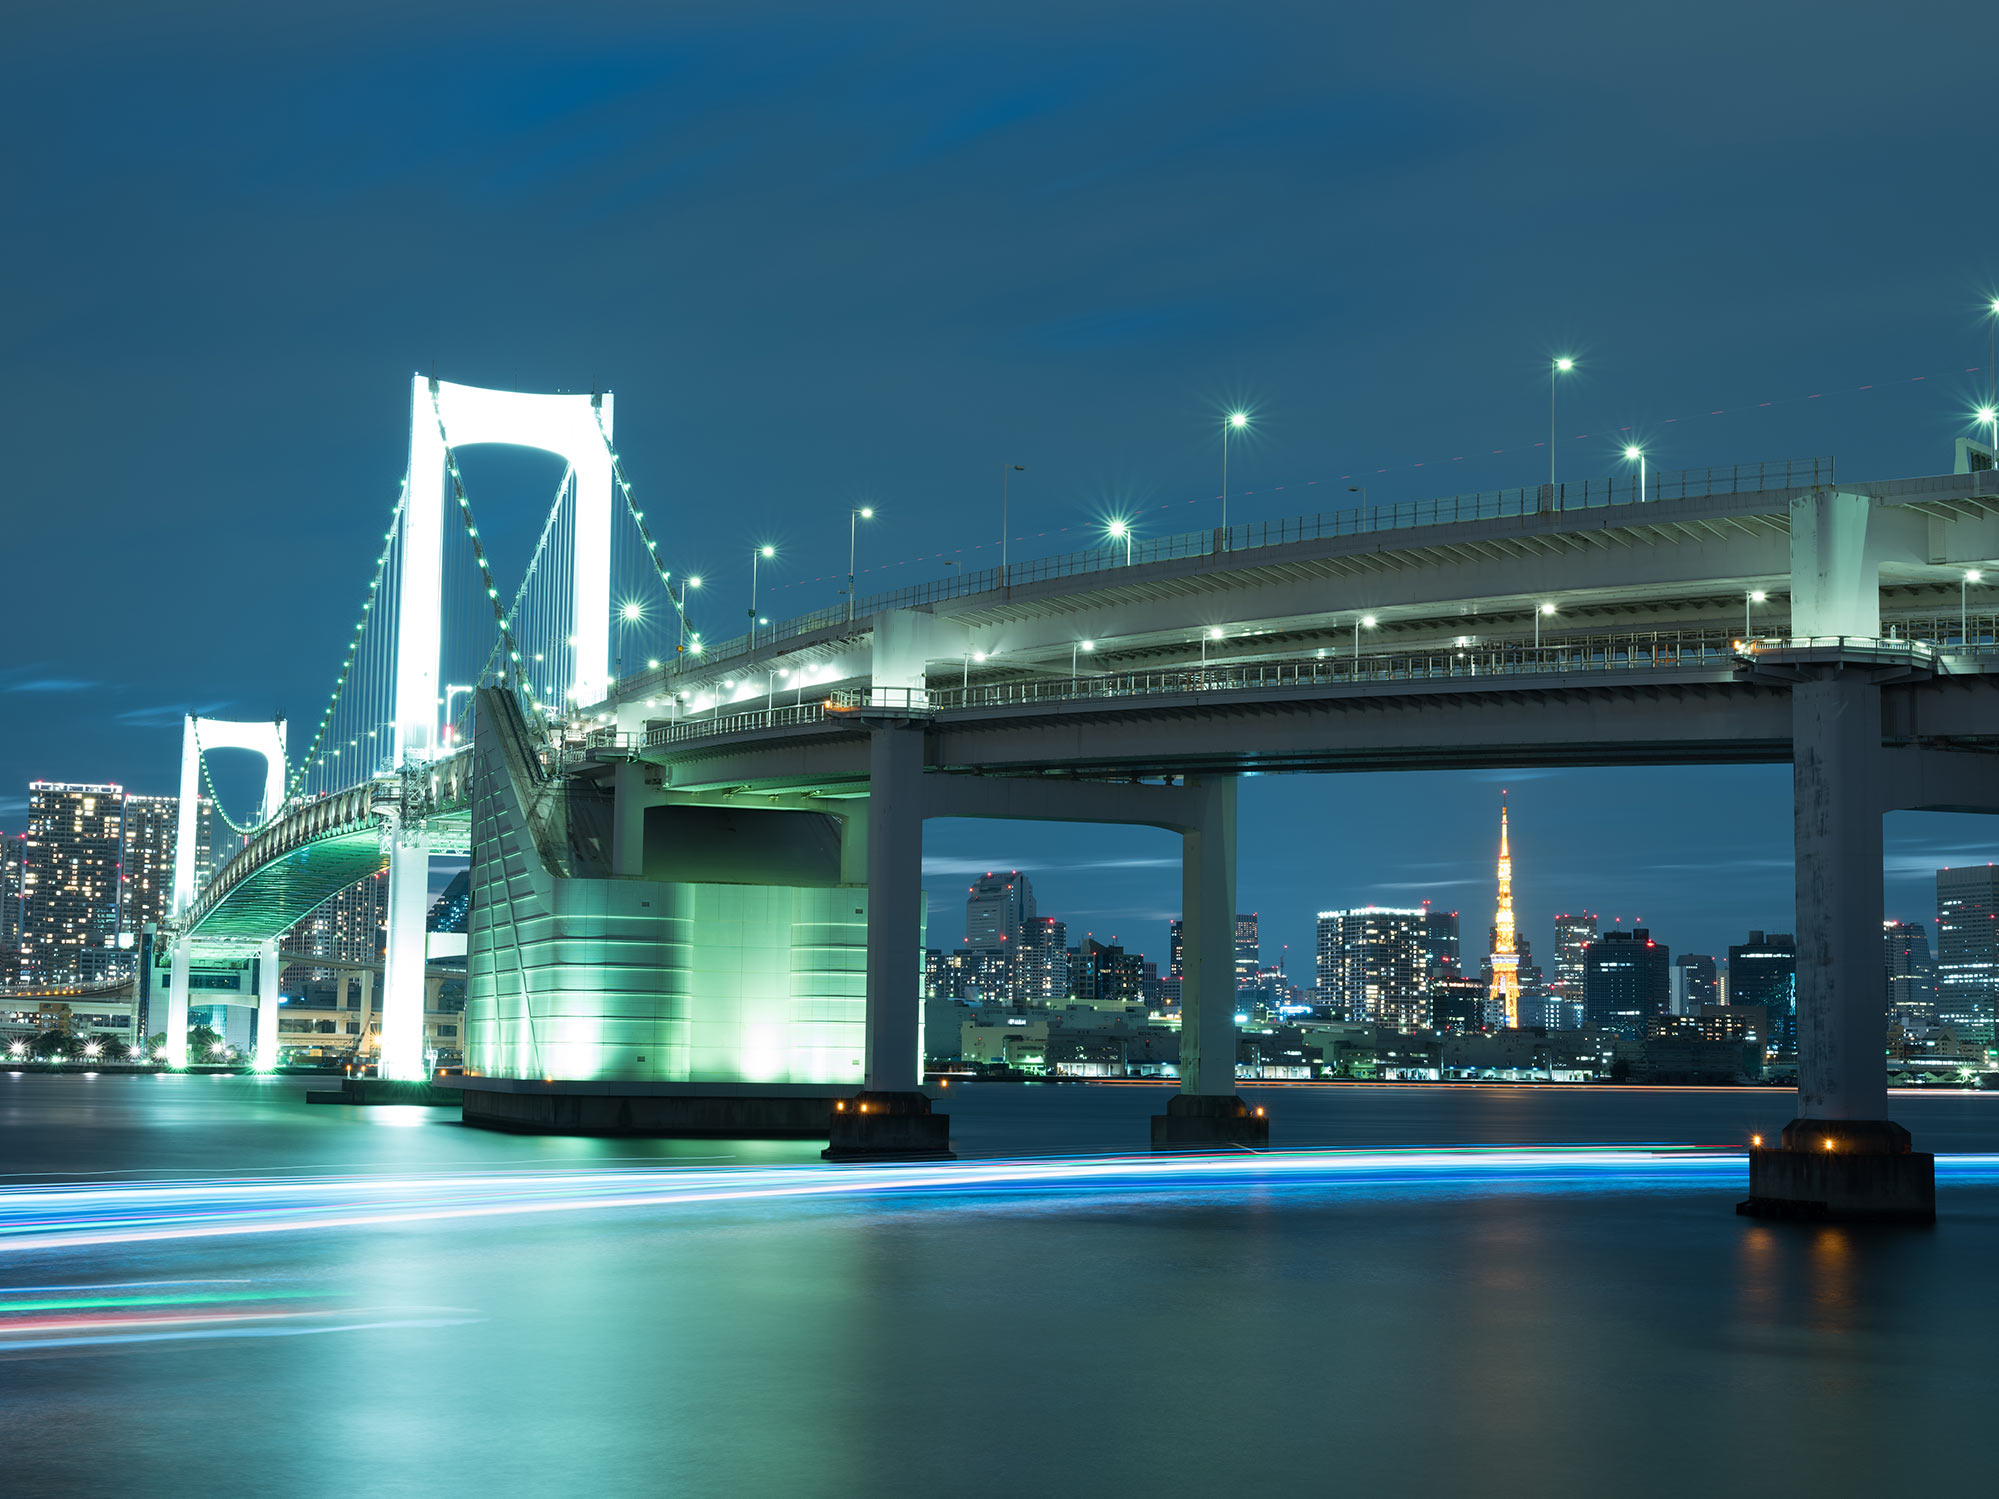 Things to do in Tokyo at night Cruise